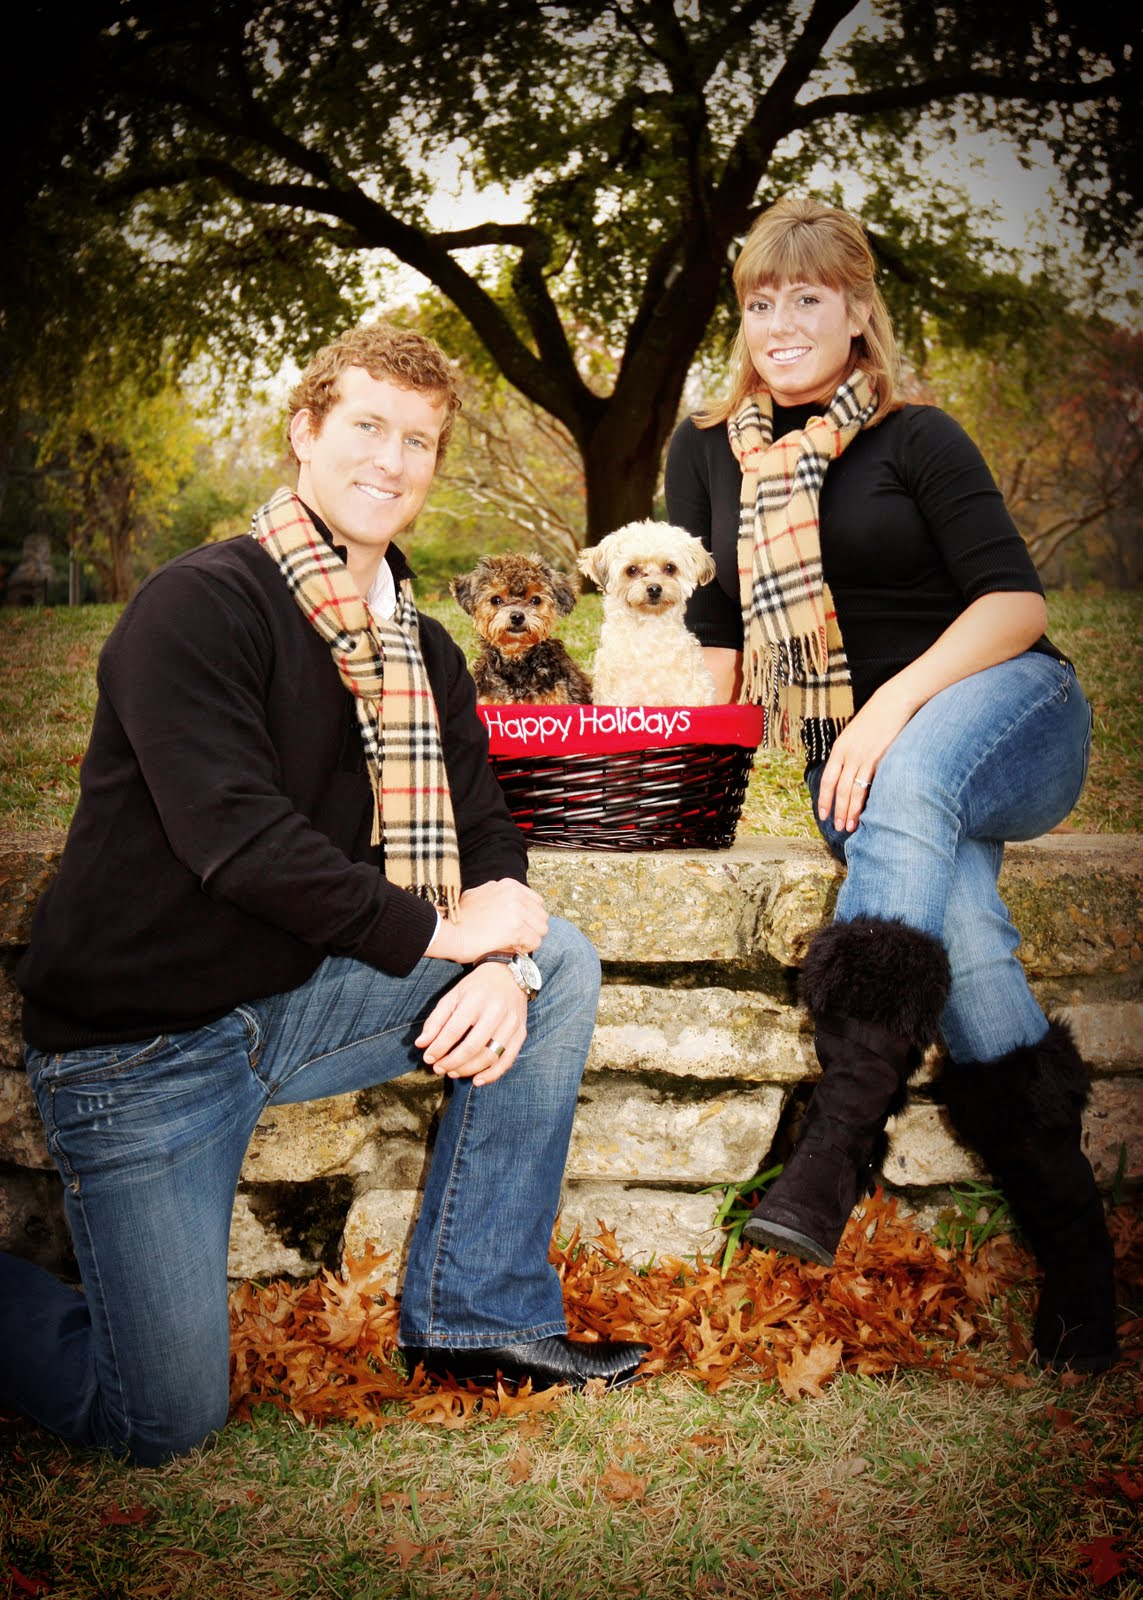 cool christmas photo ideas - ANNAE KLEIN PHOTOGRAPHY FIELDS CHRISTMAS SHOOT DALLAS